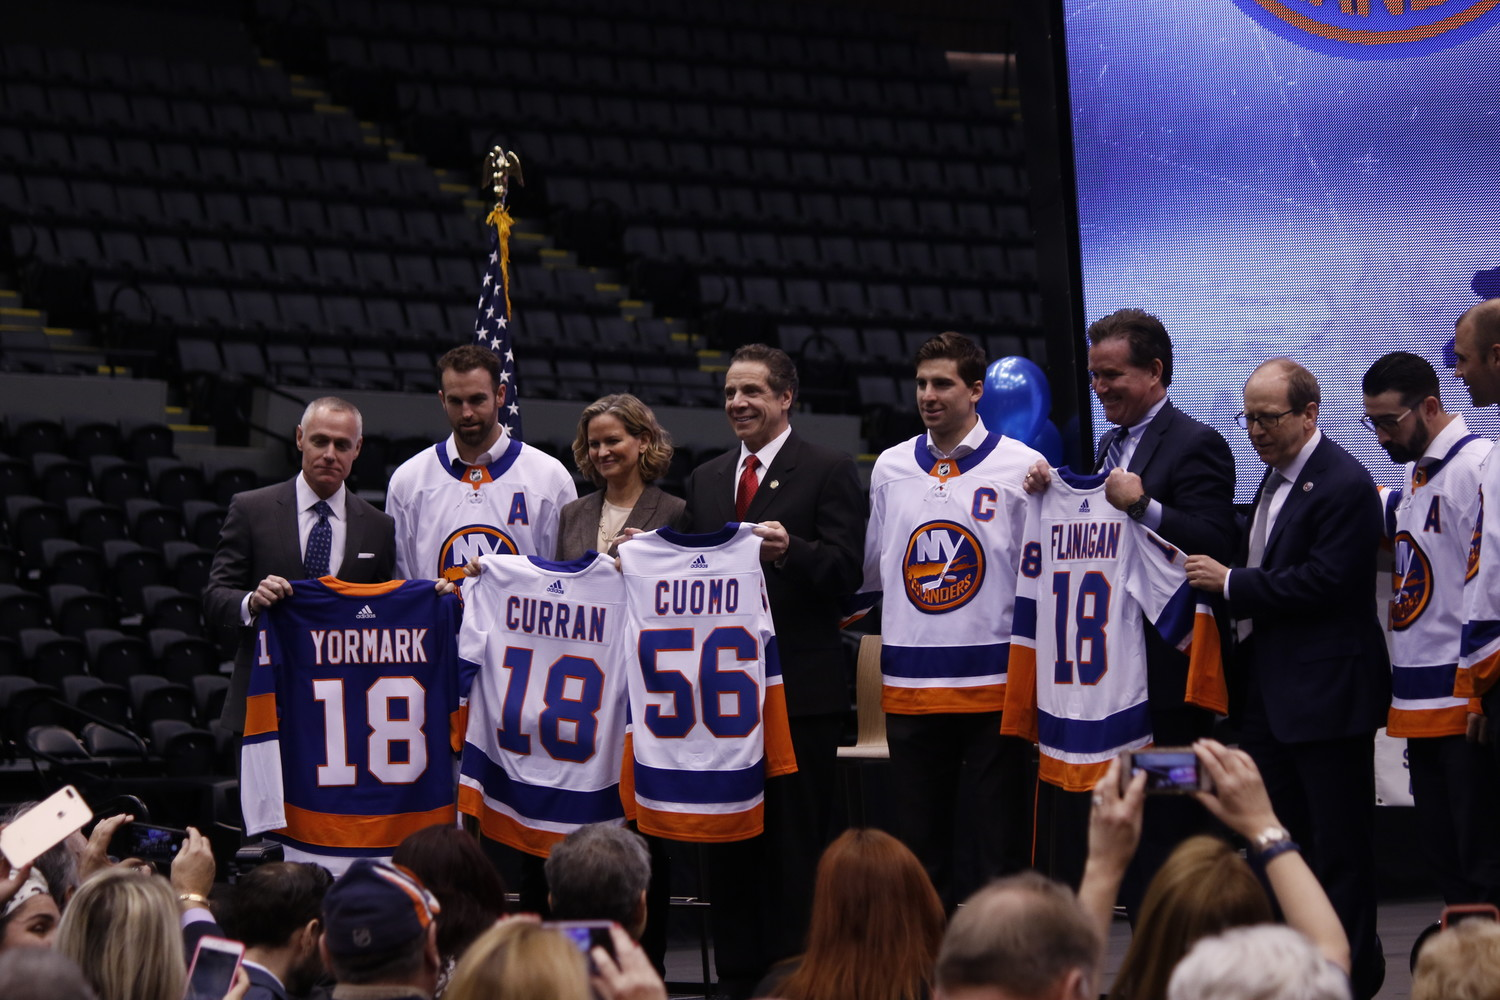 Brett Yormark, the CEO of Brooklyn Sports & Entertainment, left, County Executive Laura Curran, Gov. Andrew Cuomo and Senate Majority Leader John Flanagan were given honorary Islanders jerseys in honor of the team's return to Long Island. They were accompanied by Islander's Owner Jon Ledecky and several of the athletes on the team.